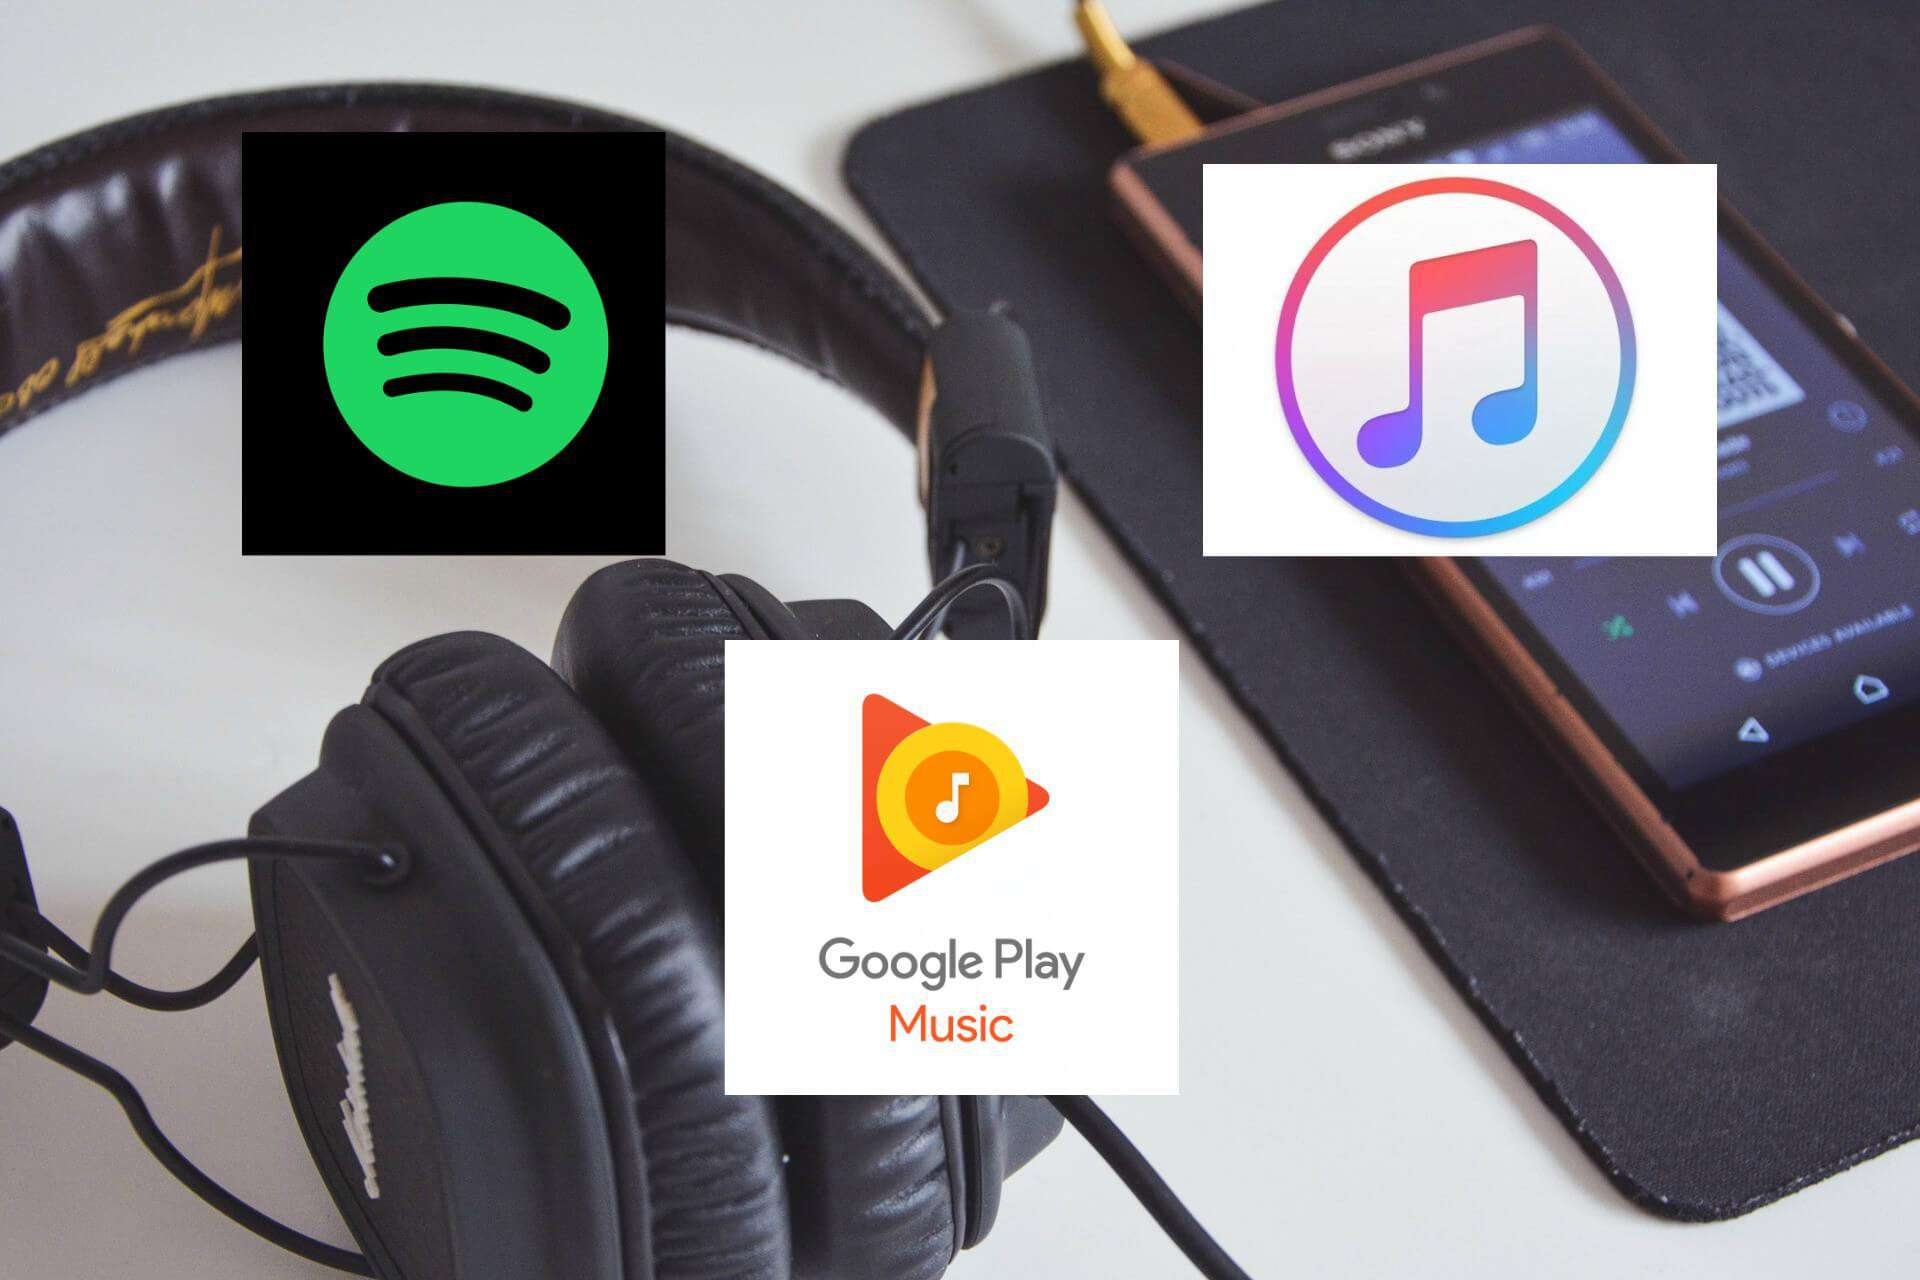 15 best music streaming apps for Android: Streaming music on